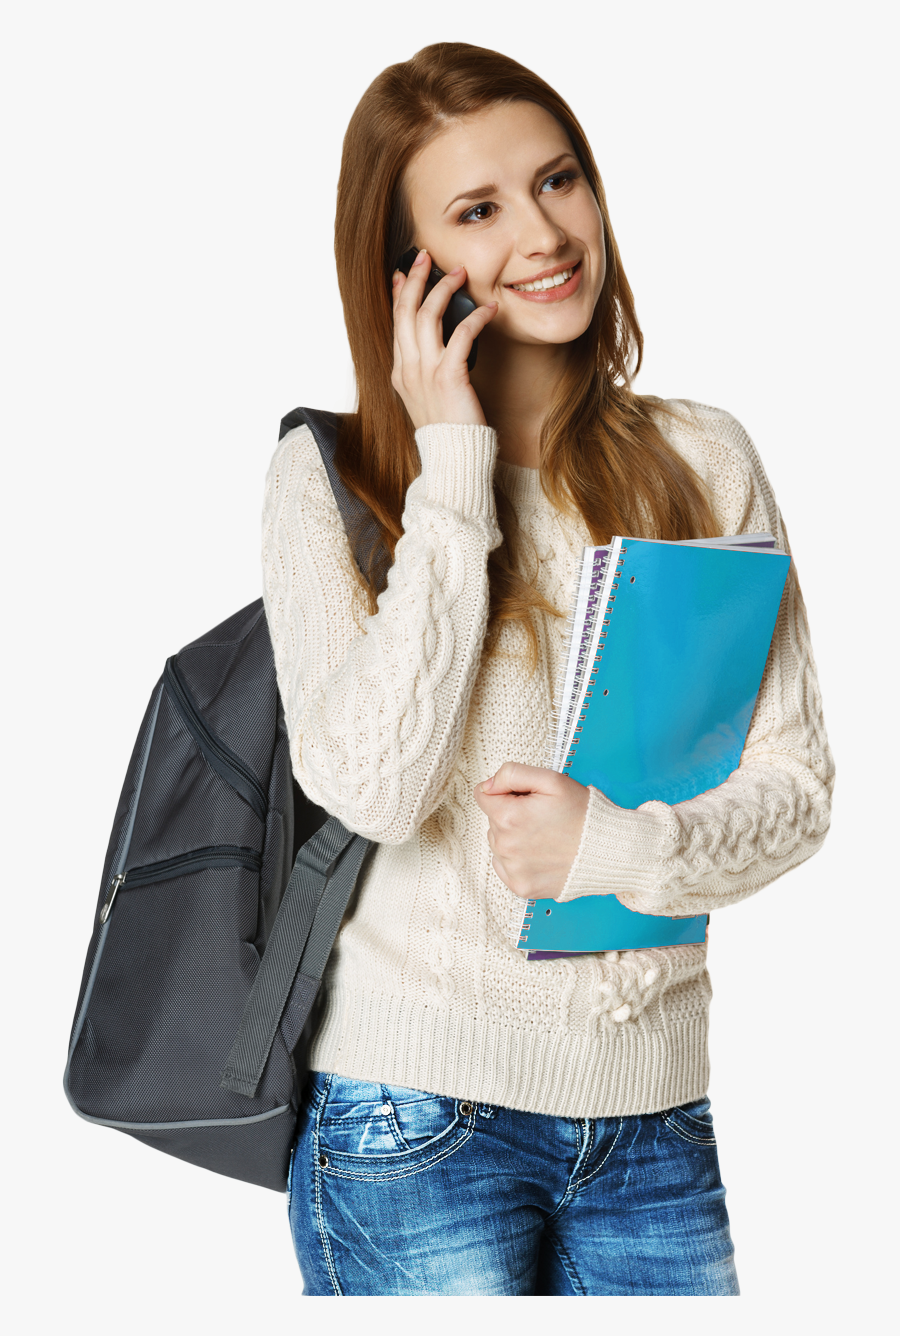 Female Student Png Image, Transparent Clipart